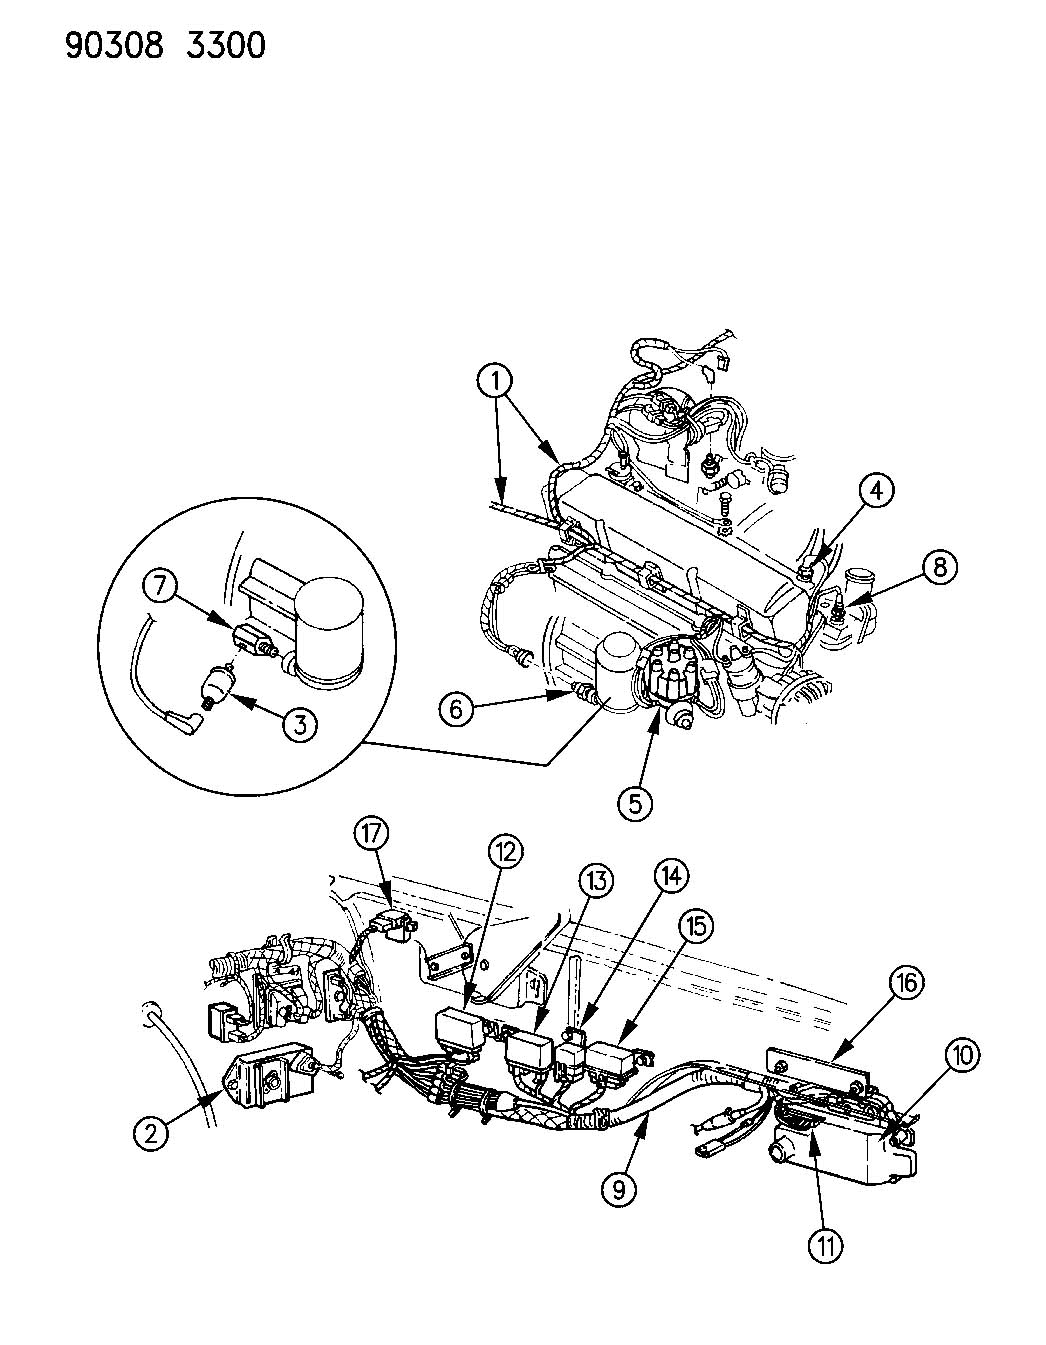 Showthread in addition honda brakepads further 91 honda cbr 600 f2 wiring diagram besides cbr 600rr